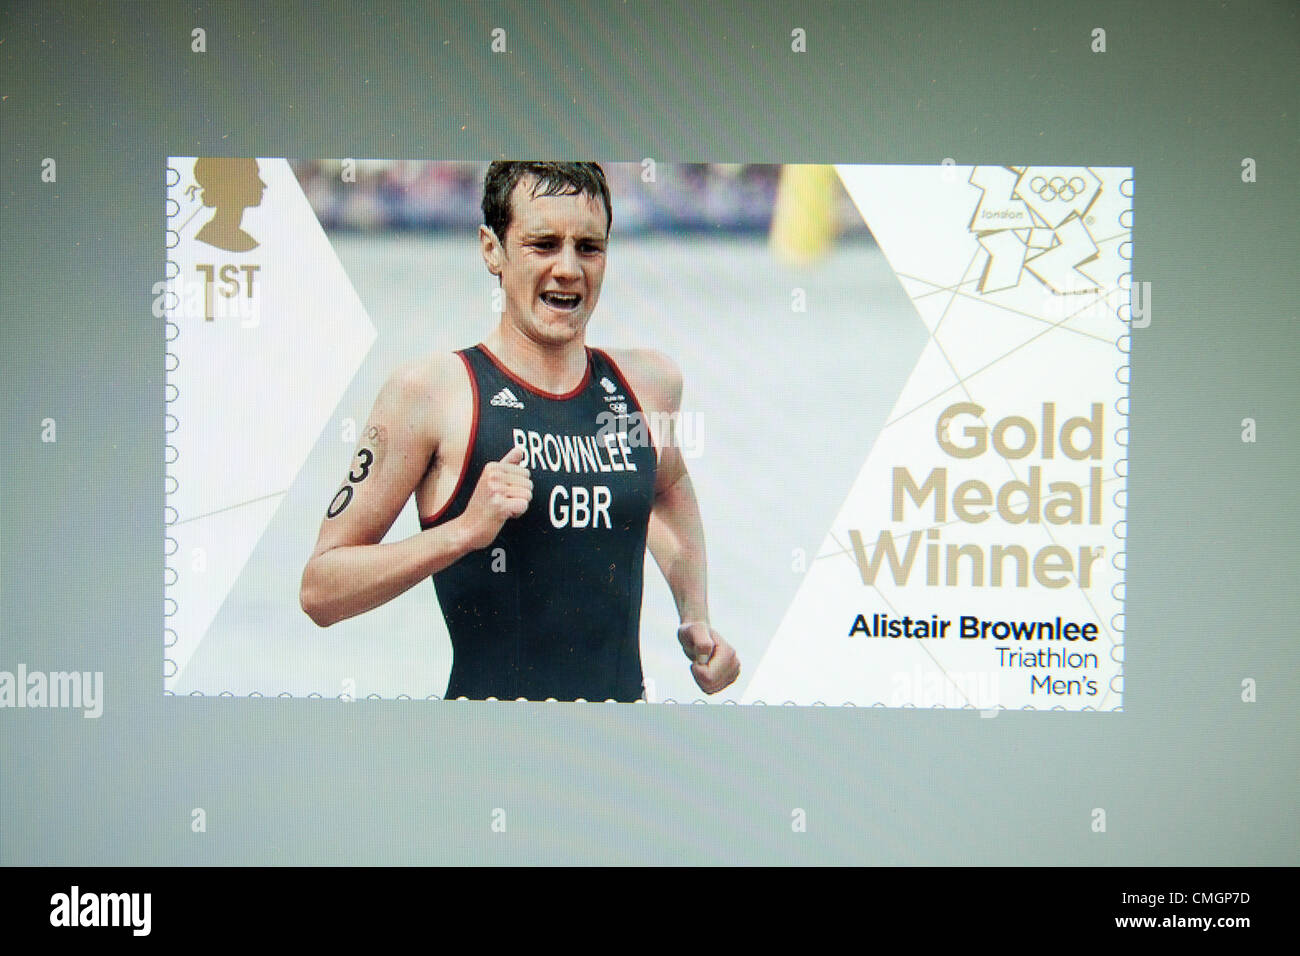 8th August 2012, London 2012. Special edition commemorative stamp of  Alistair Brownlee who claims the Gold medal - Stock Image